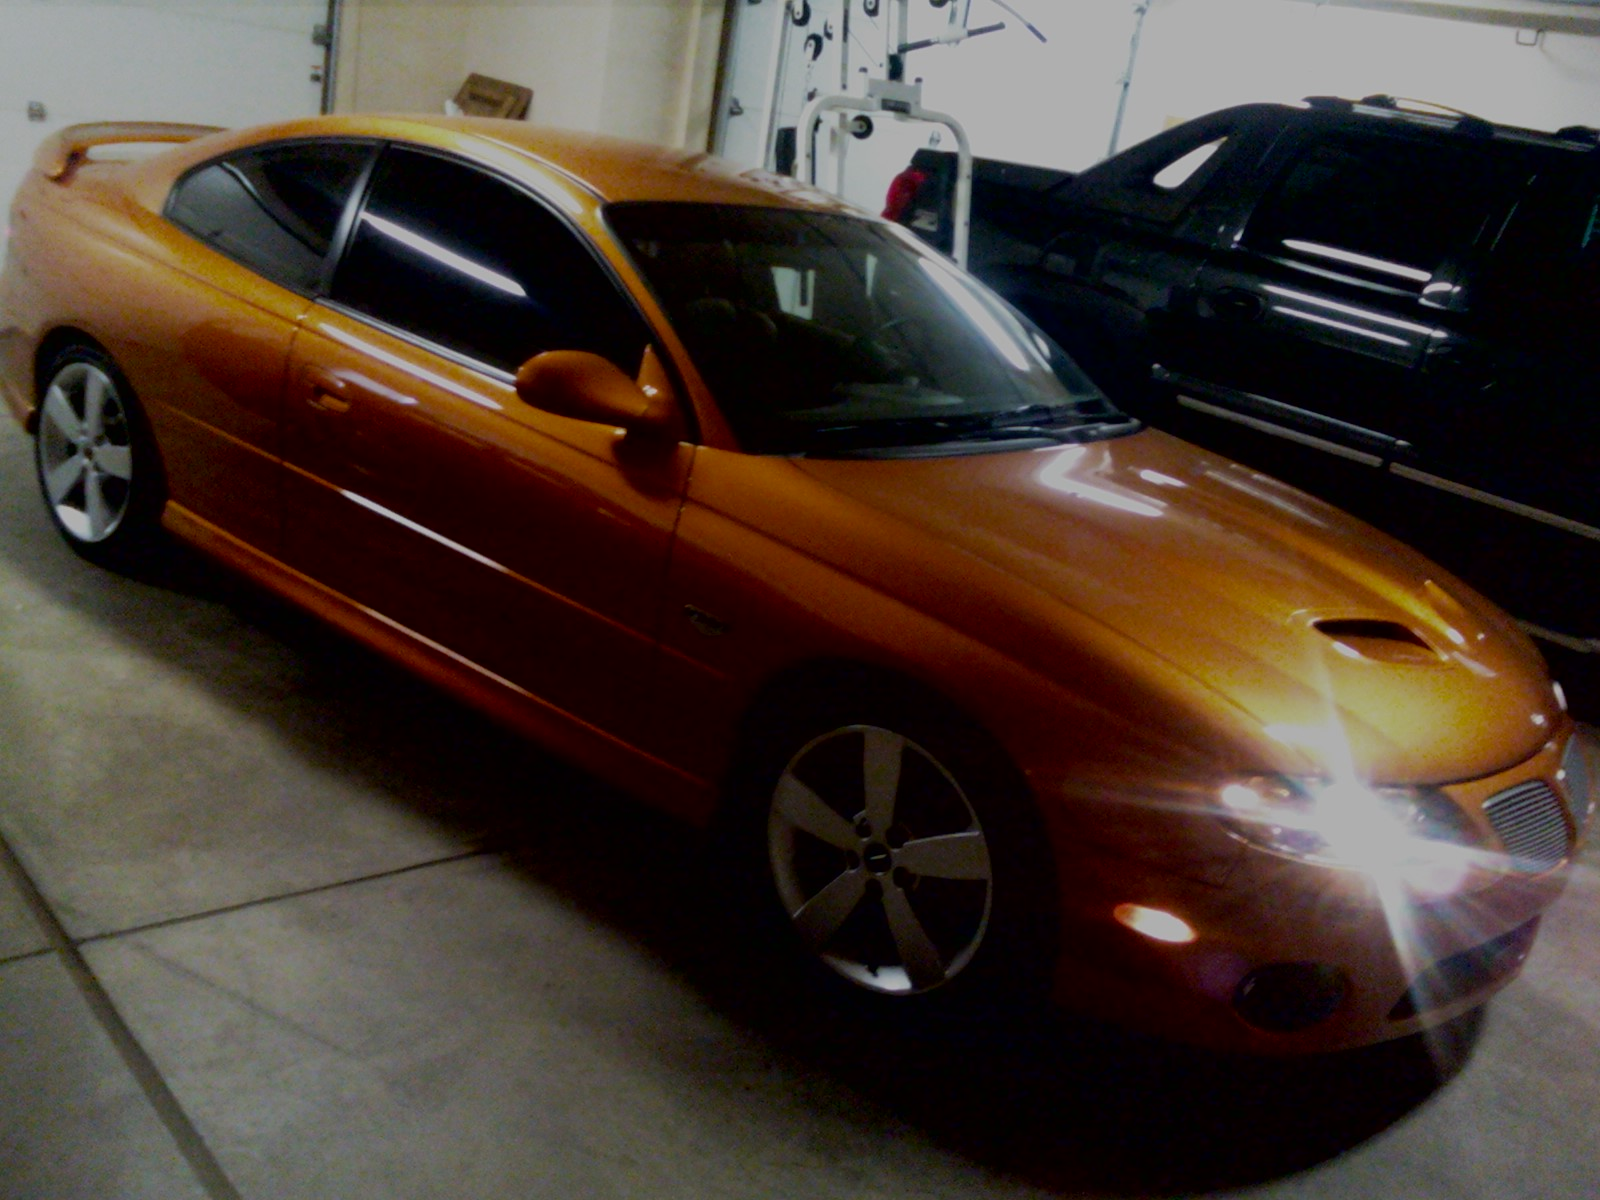 2006 Brazen Orange GTO For Sale-0919081309.jpg